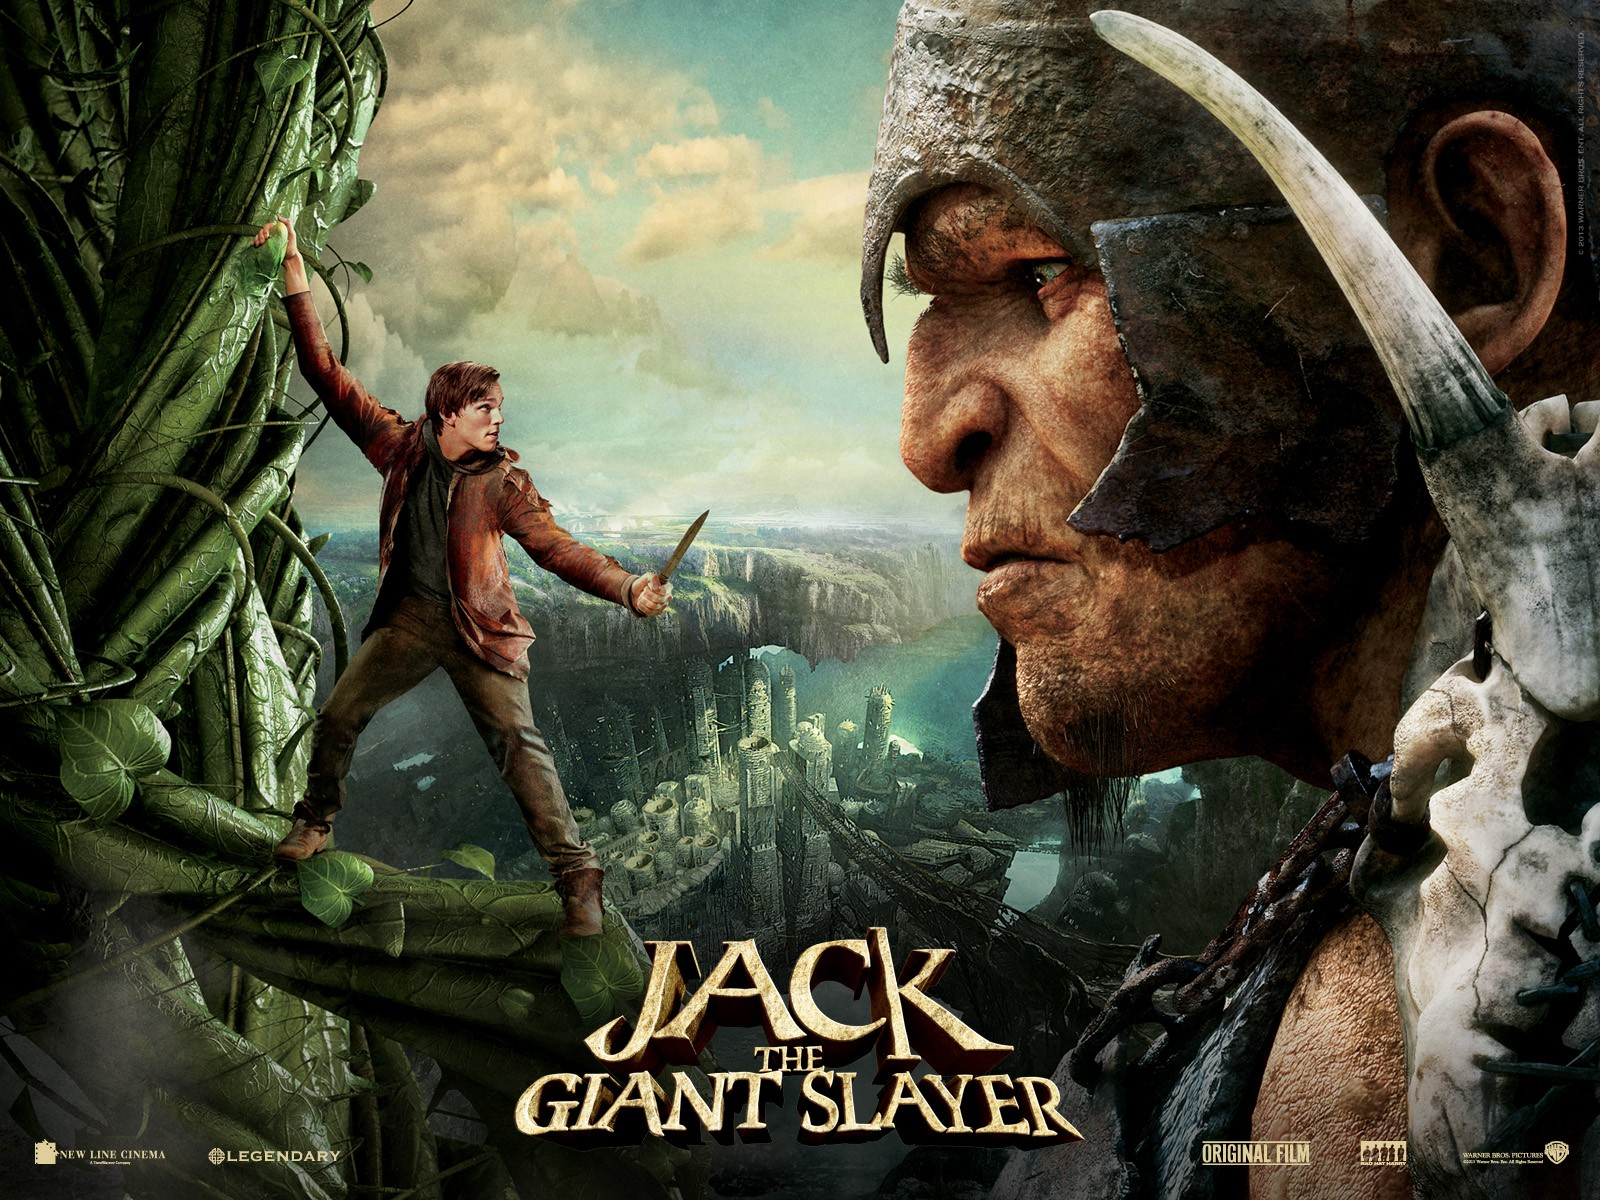 Free download Jack the Giant Slayer 2013 Movie